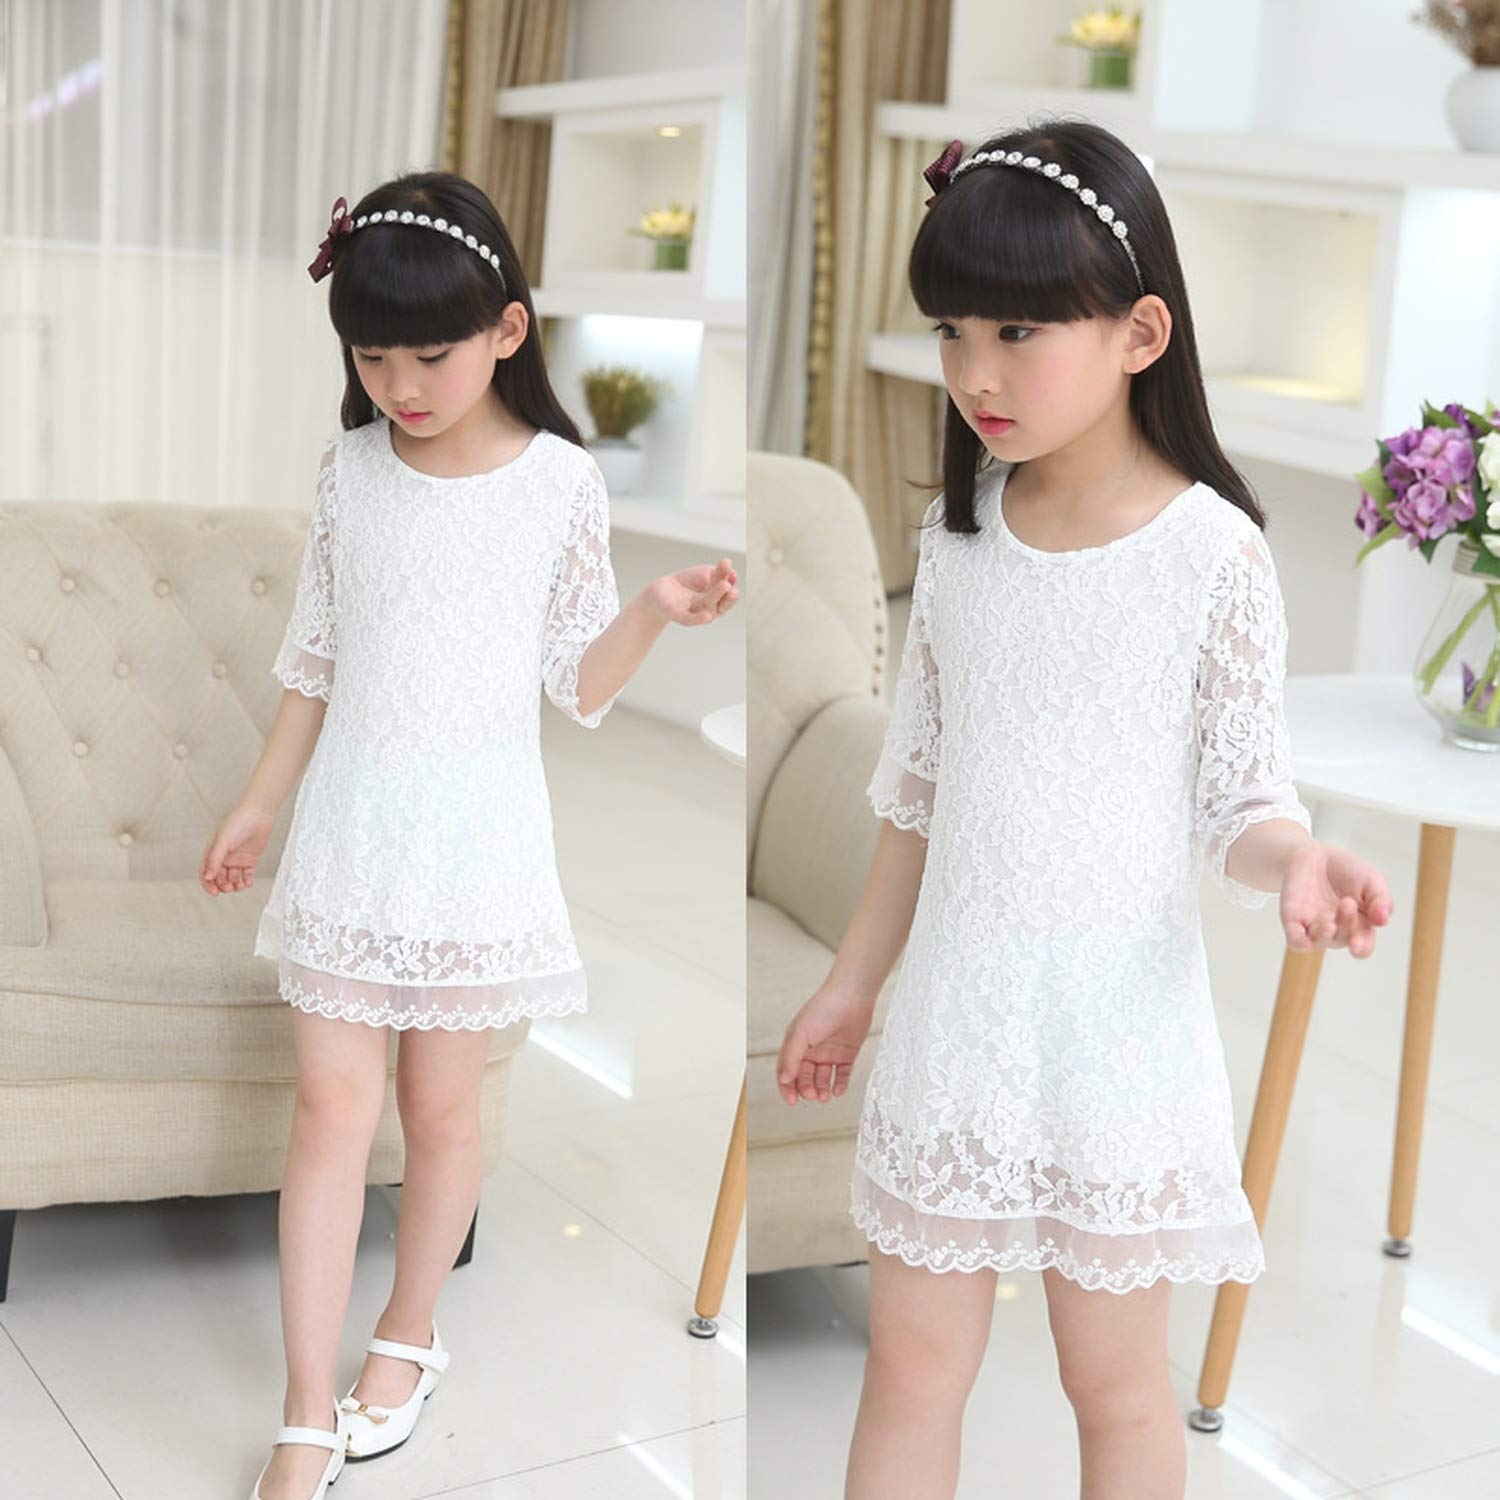 Kids 2018 Summer Autumn Lace Dress White Large Size Girls Dress Princess 3 4 6 8 10 12 14 16 18 Years Old Baby Girl,White,7 by Gooding Day (Image #2)